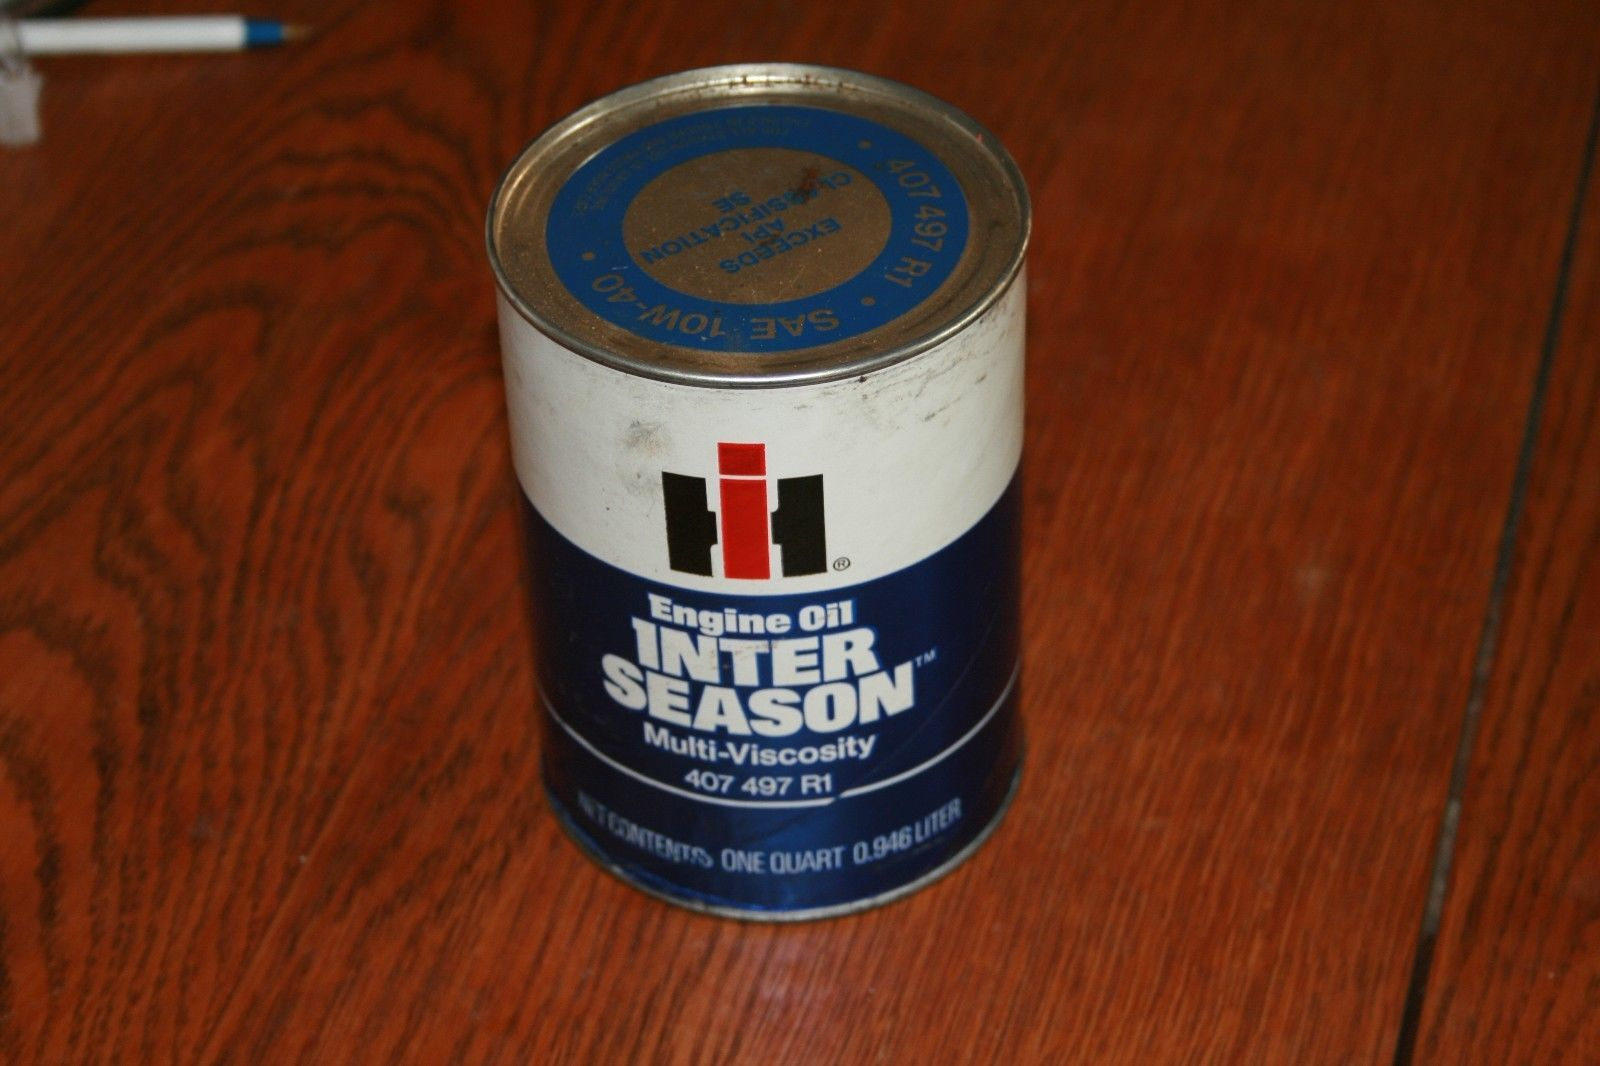 International Harvester Tractor Truck Scout Inter Season Engine Oil Can https://t.co/J3kZSCtDQb https://t.co/TDyGviVx21